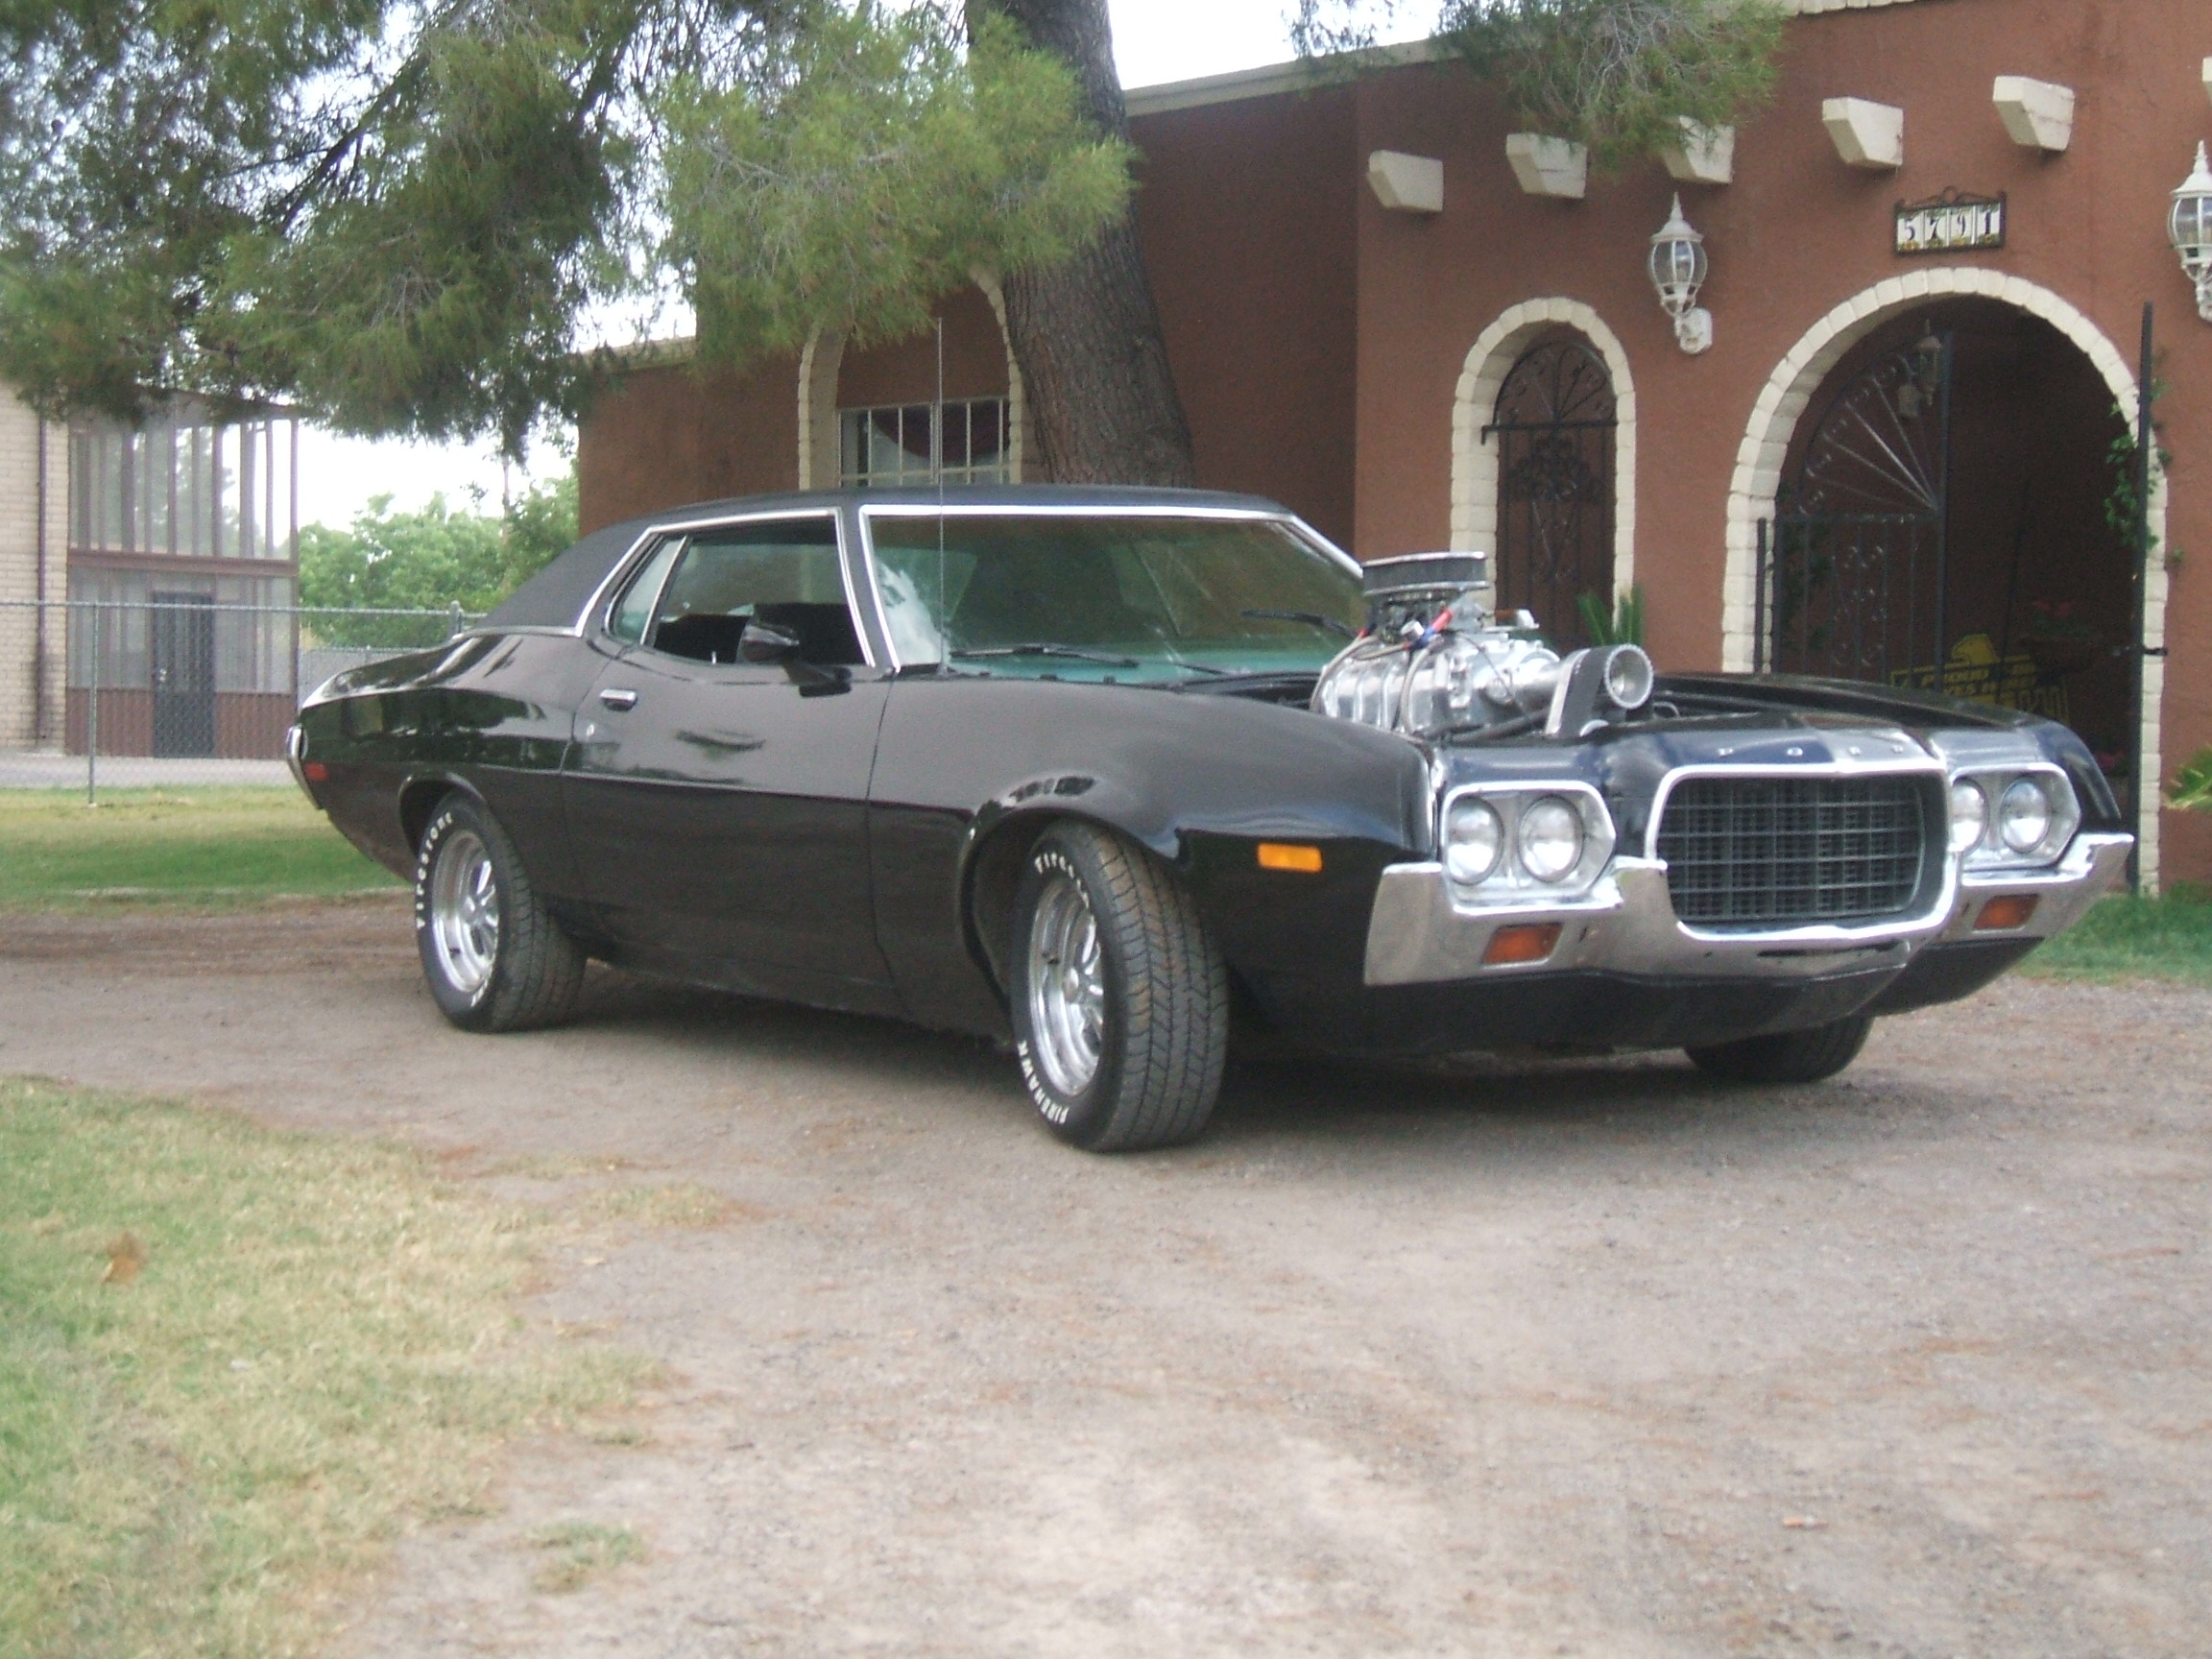 GrabberJ 1971 Ford Torino Specs, Photos, Modification Info at CarDomain